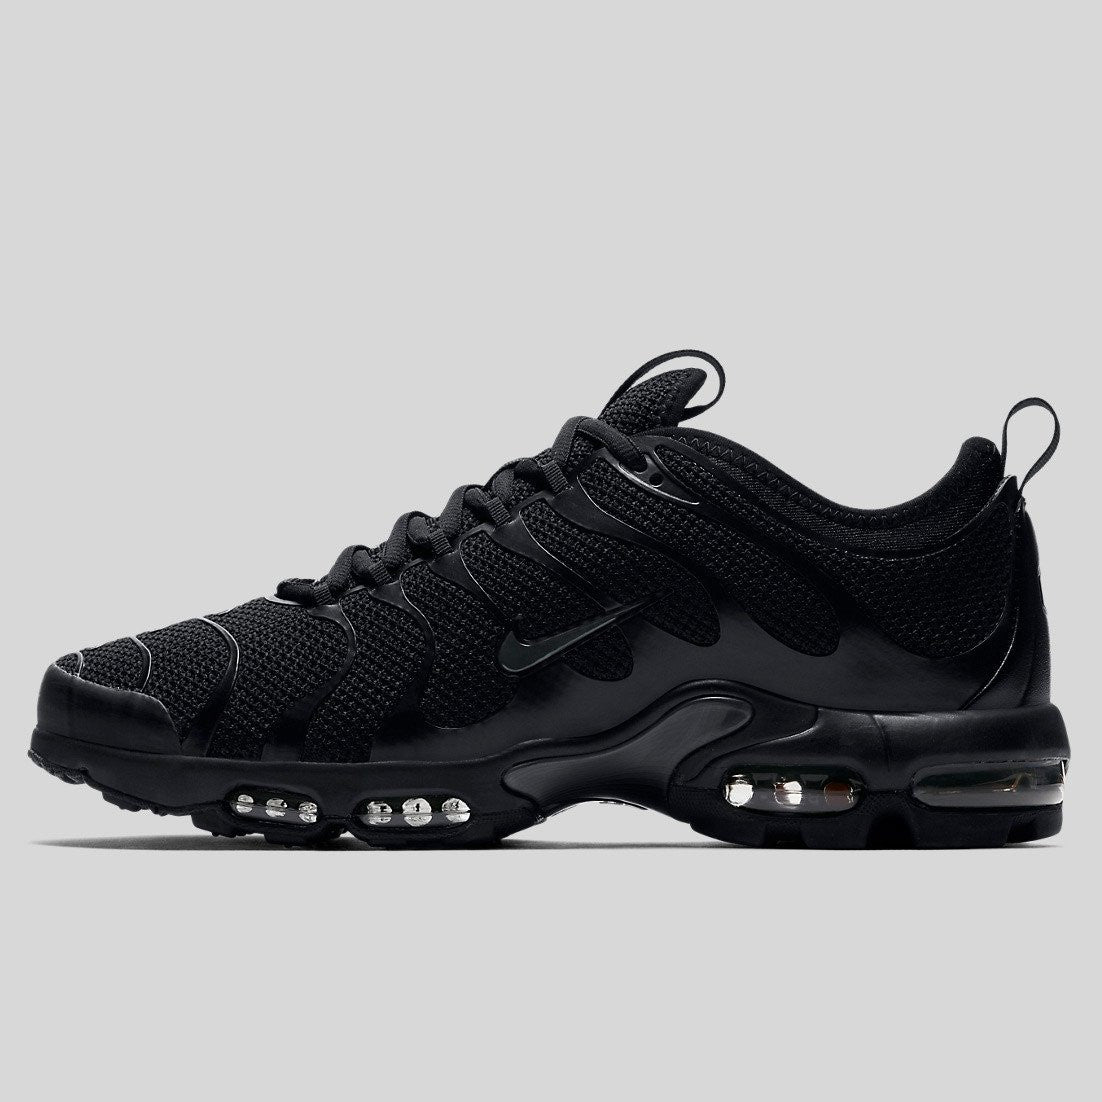 Nike Air Max Plus TN Ultra Black Anthracite Black (898015-005)  90ee2ee8e